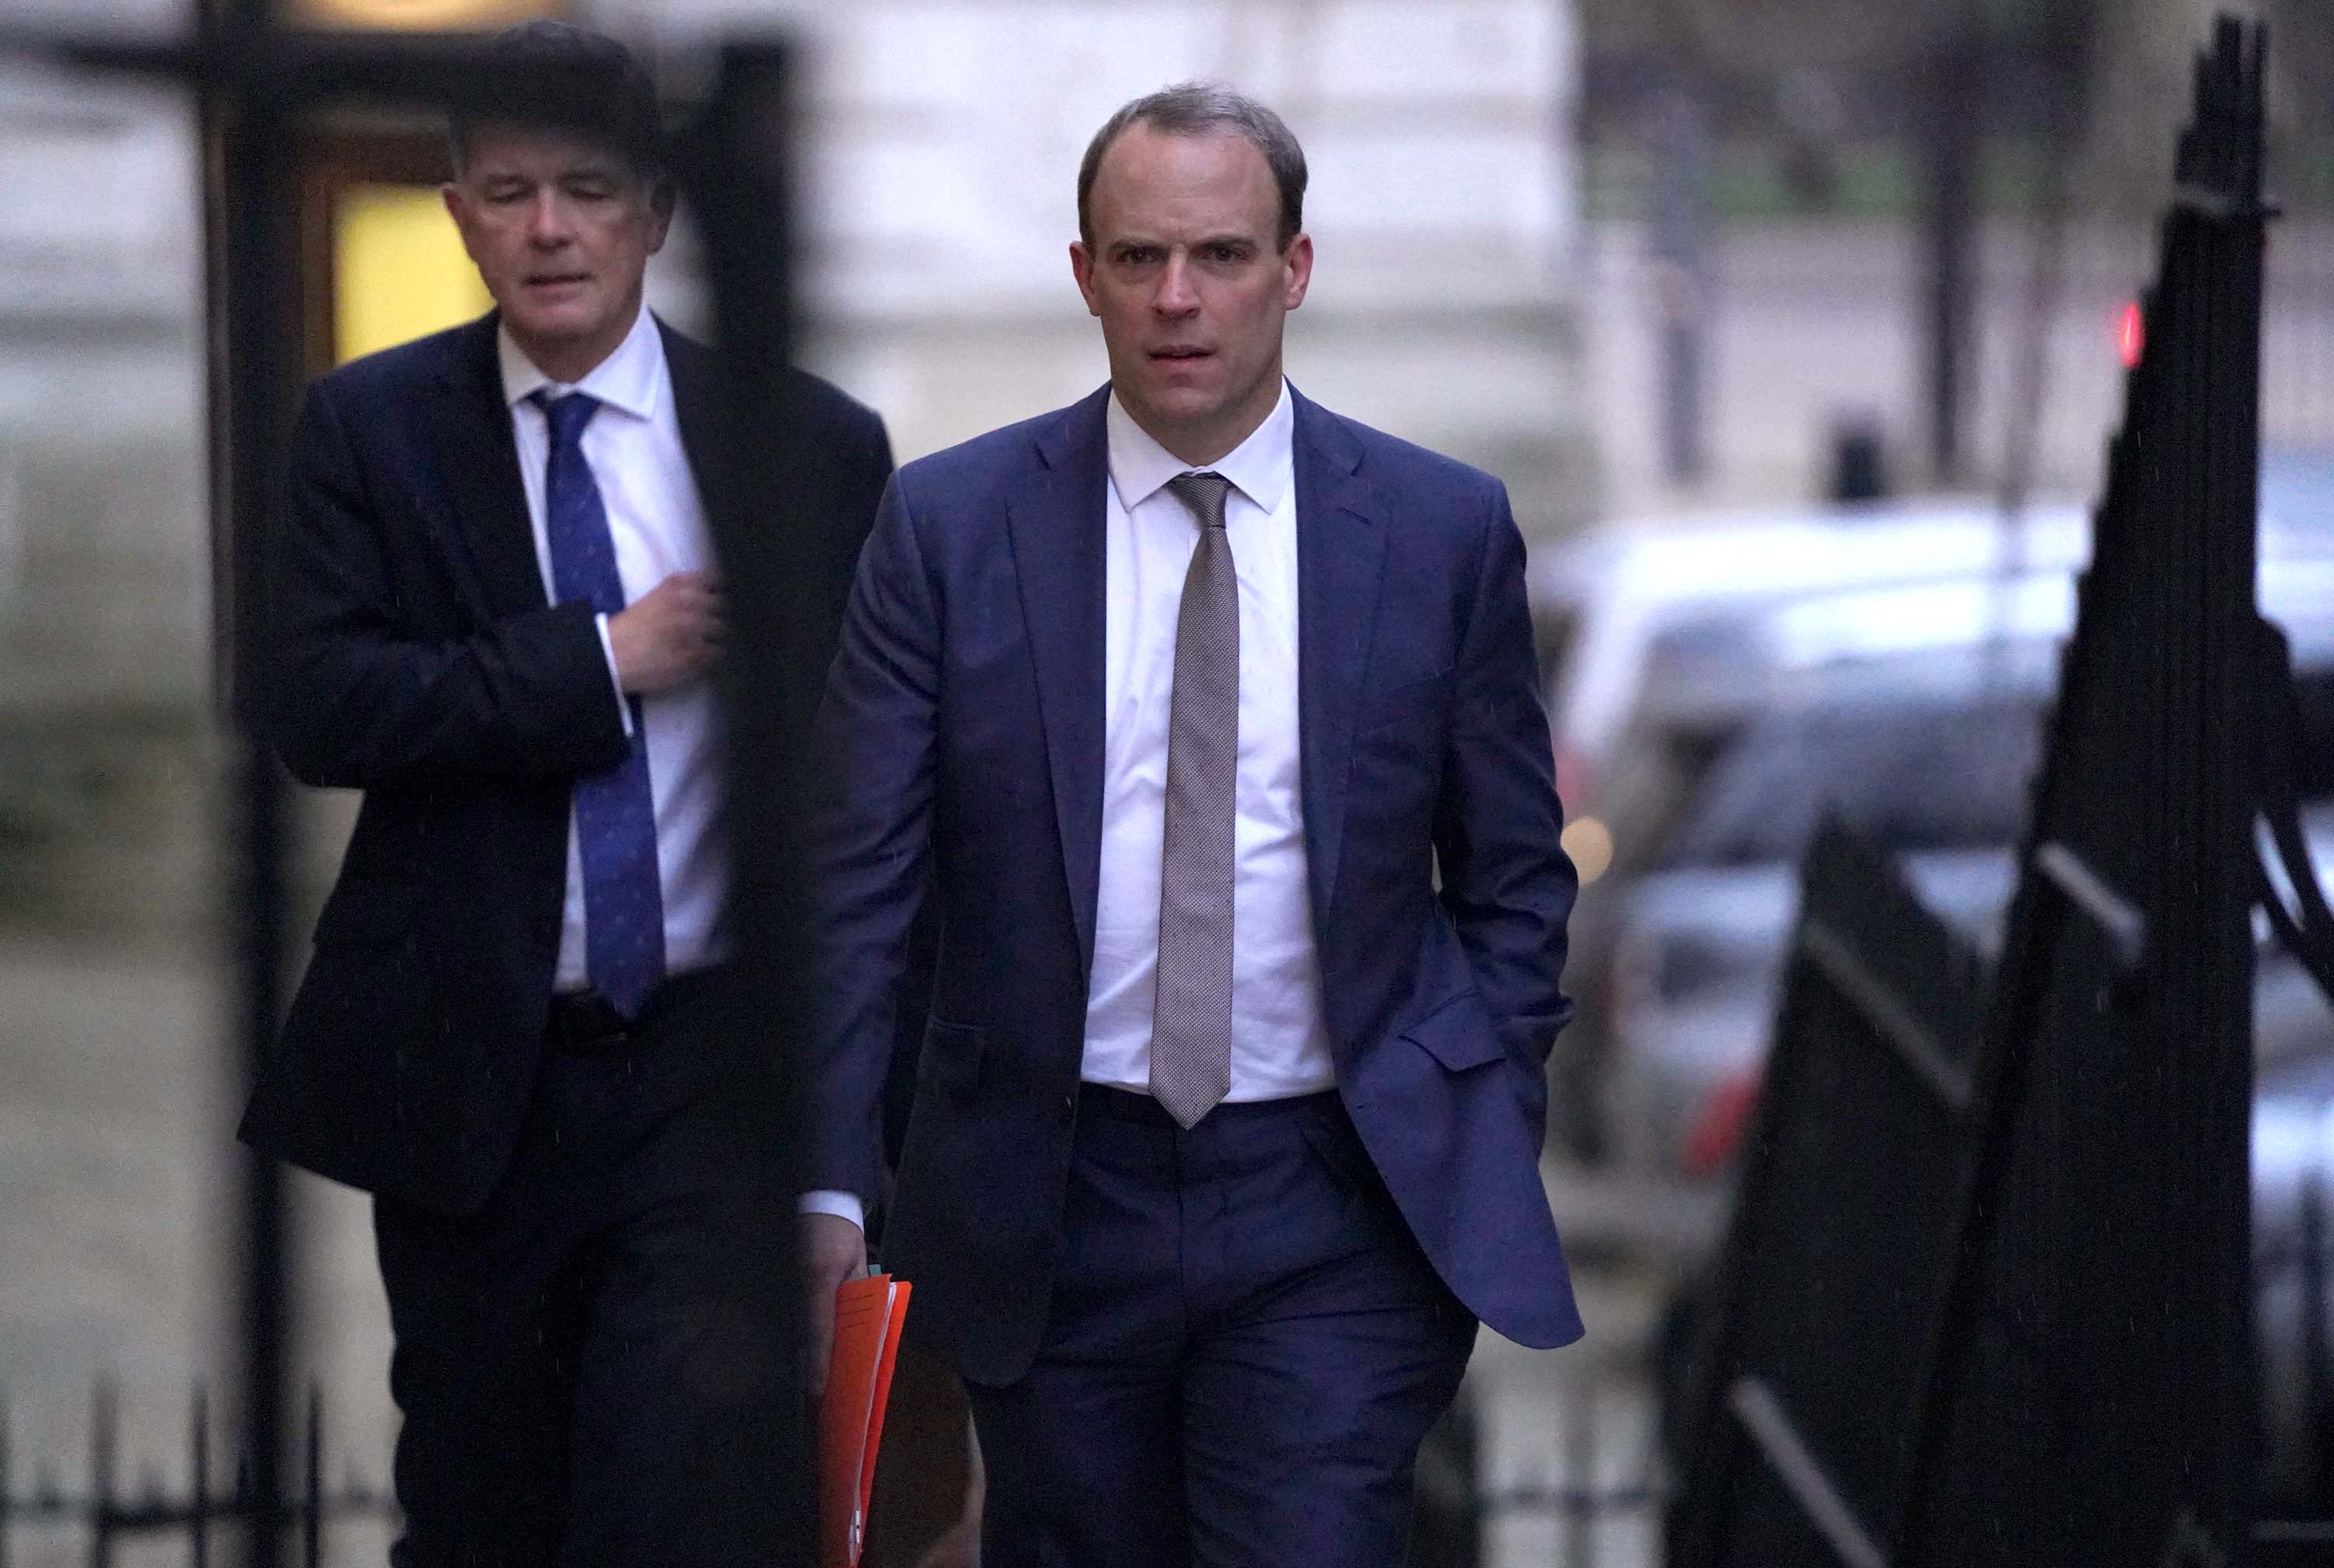 UK Foreign Secretary Dominic Raab arrives to meet with Prime Minister Boris Johnson on January 6 in London, England. Credit: Peter Summers/Getty Images